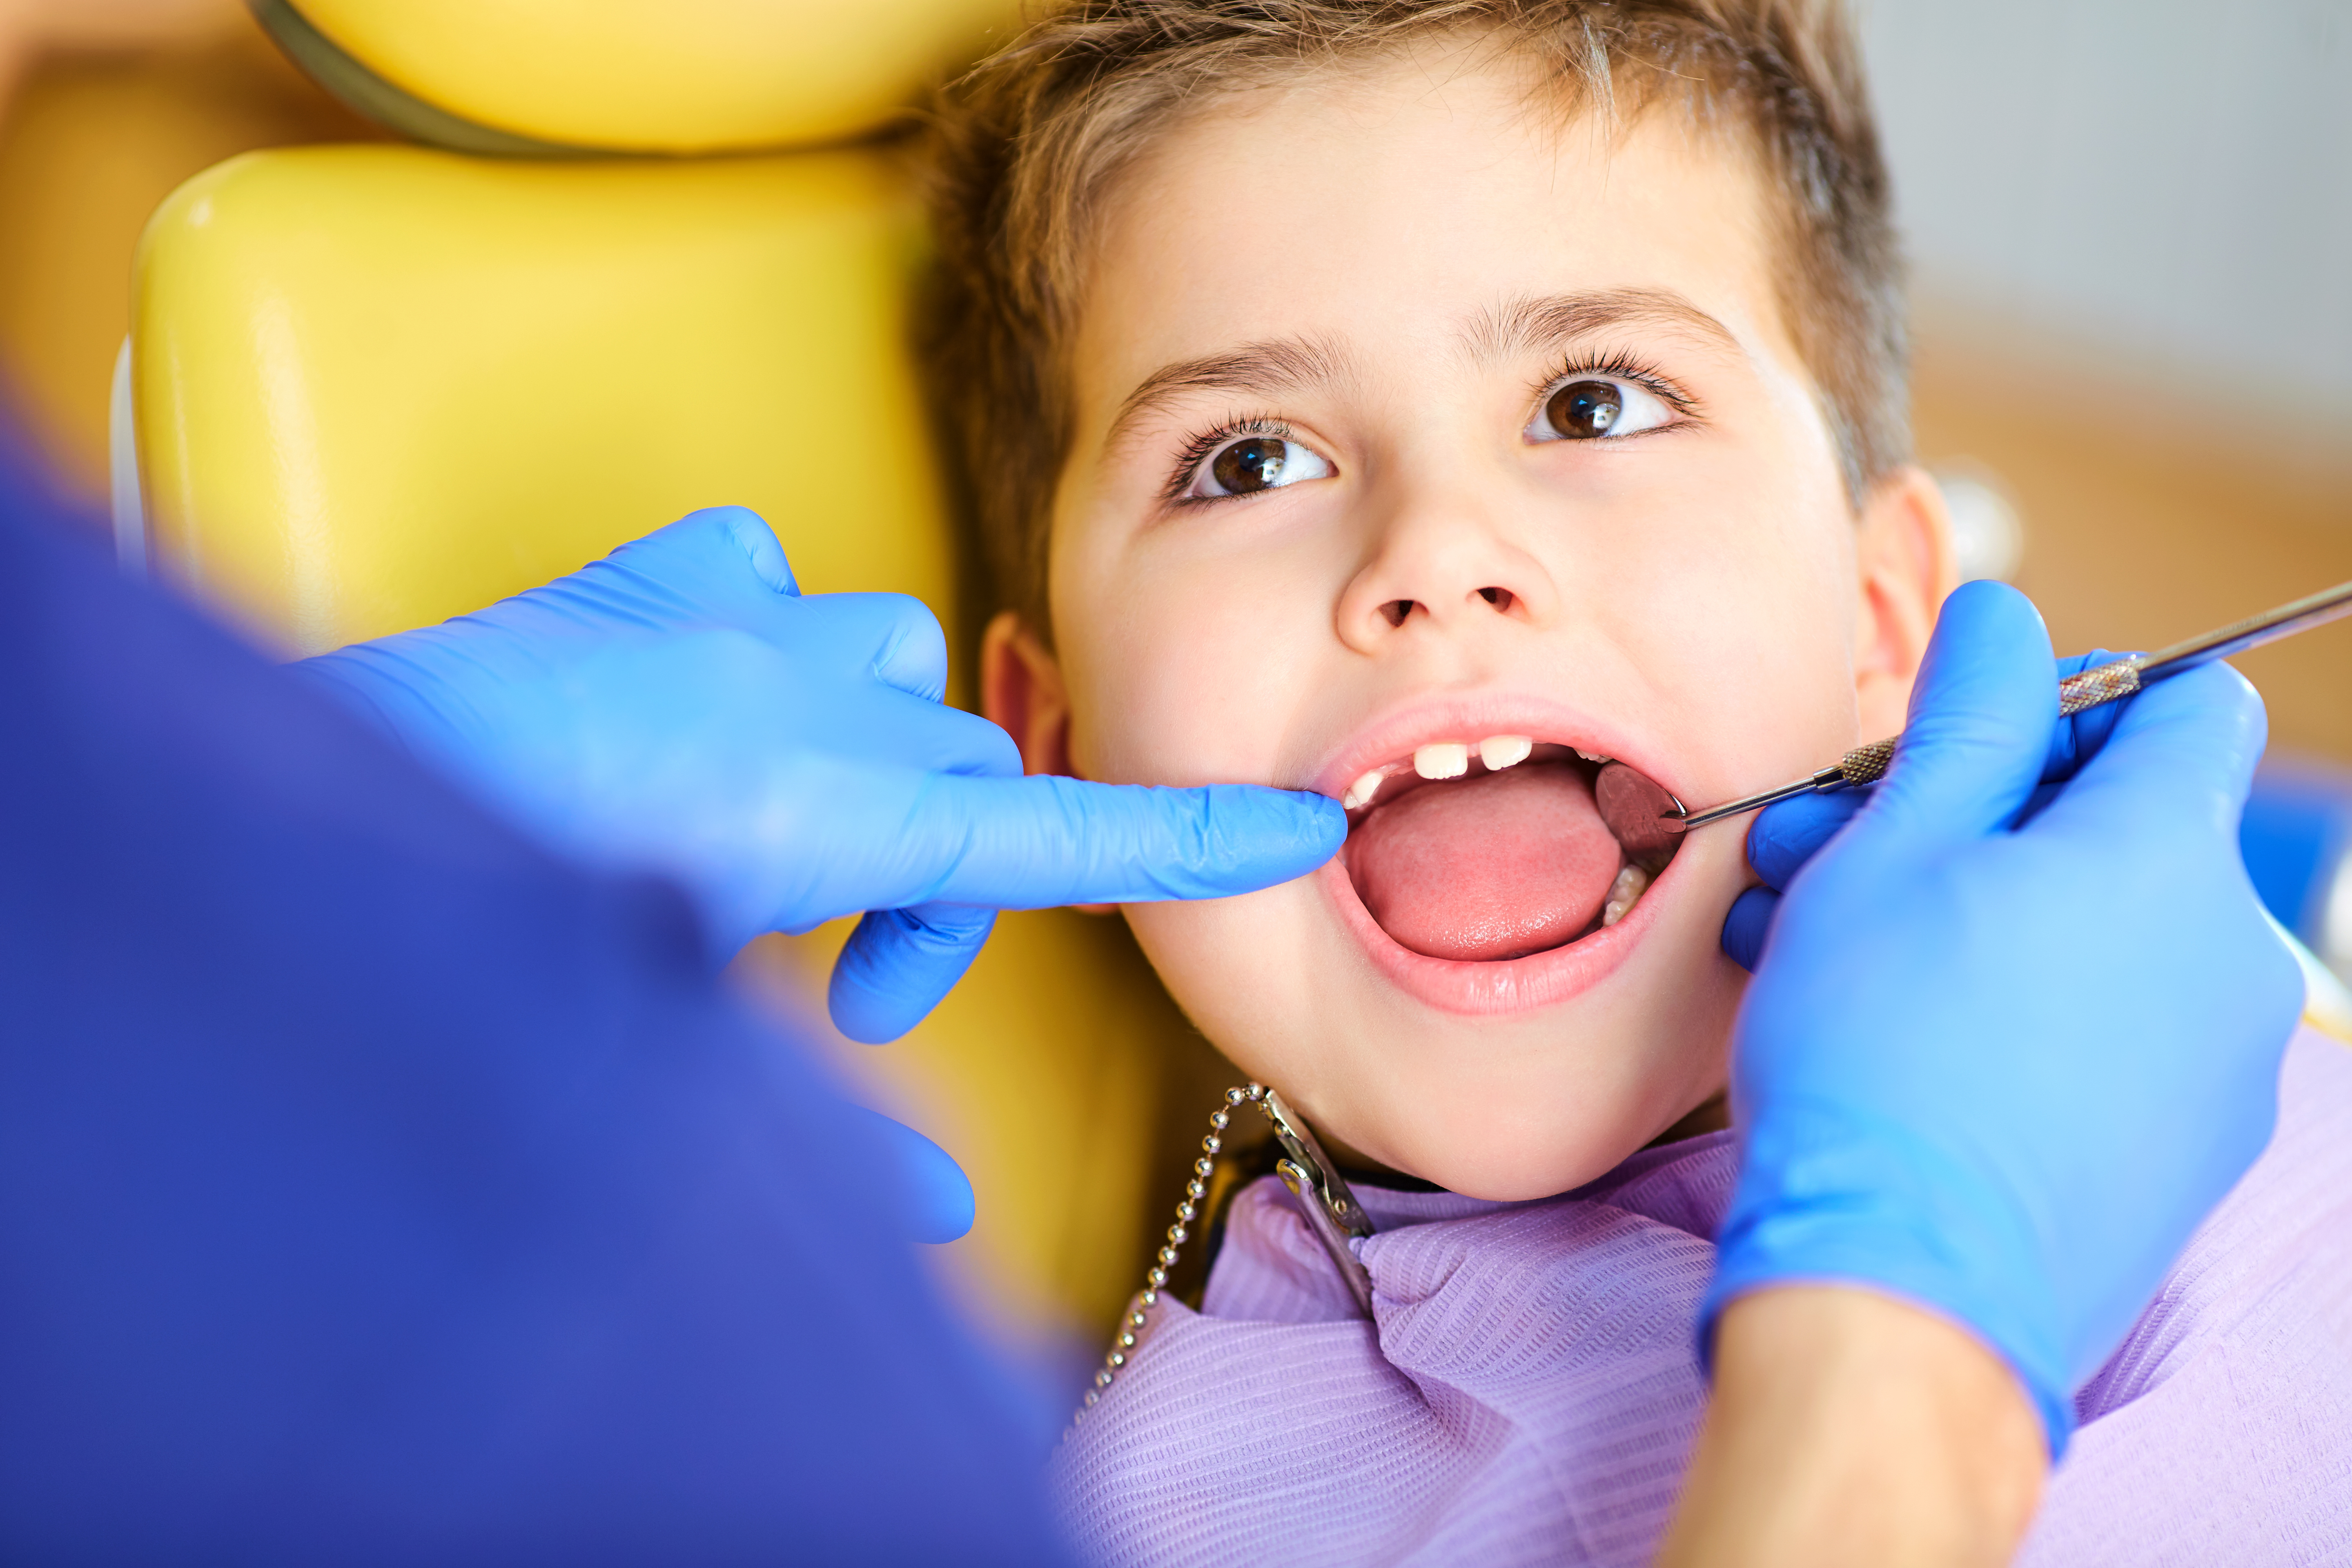 IDA warns no free dental care for under sixes